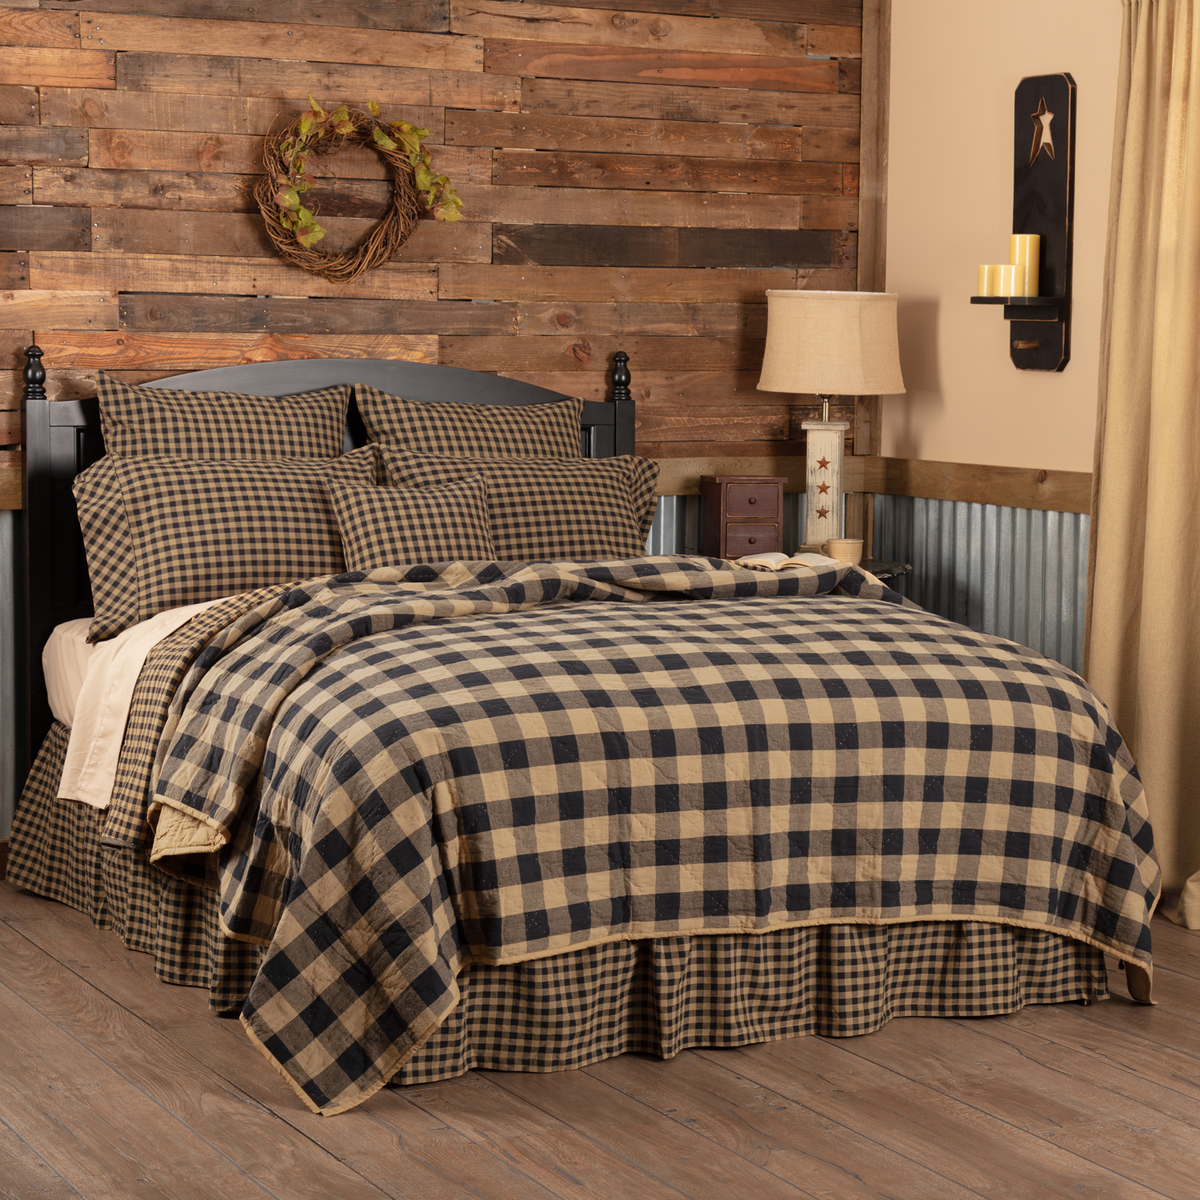 BLACK CHECK QUILTED coverlet -choose size & accessories-Prim